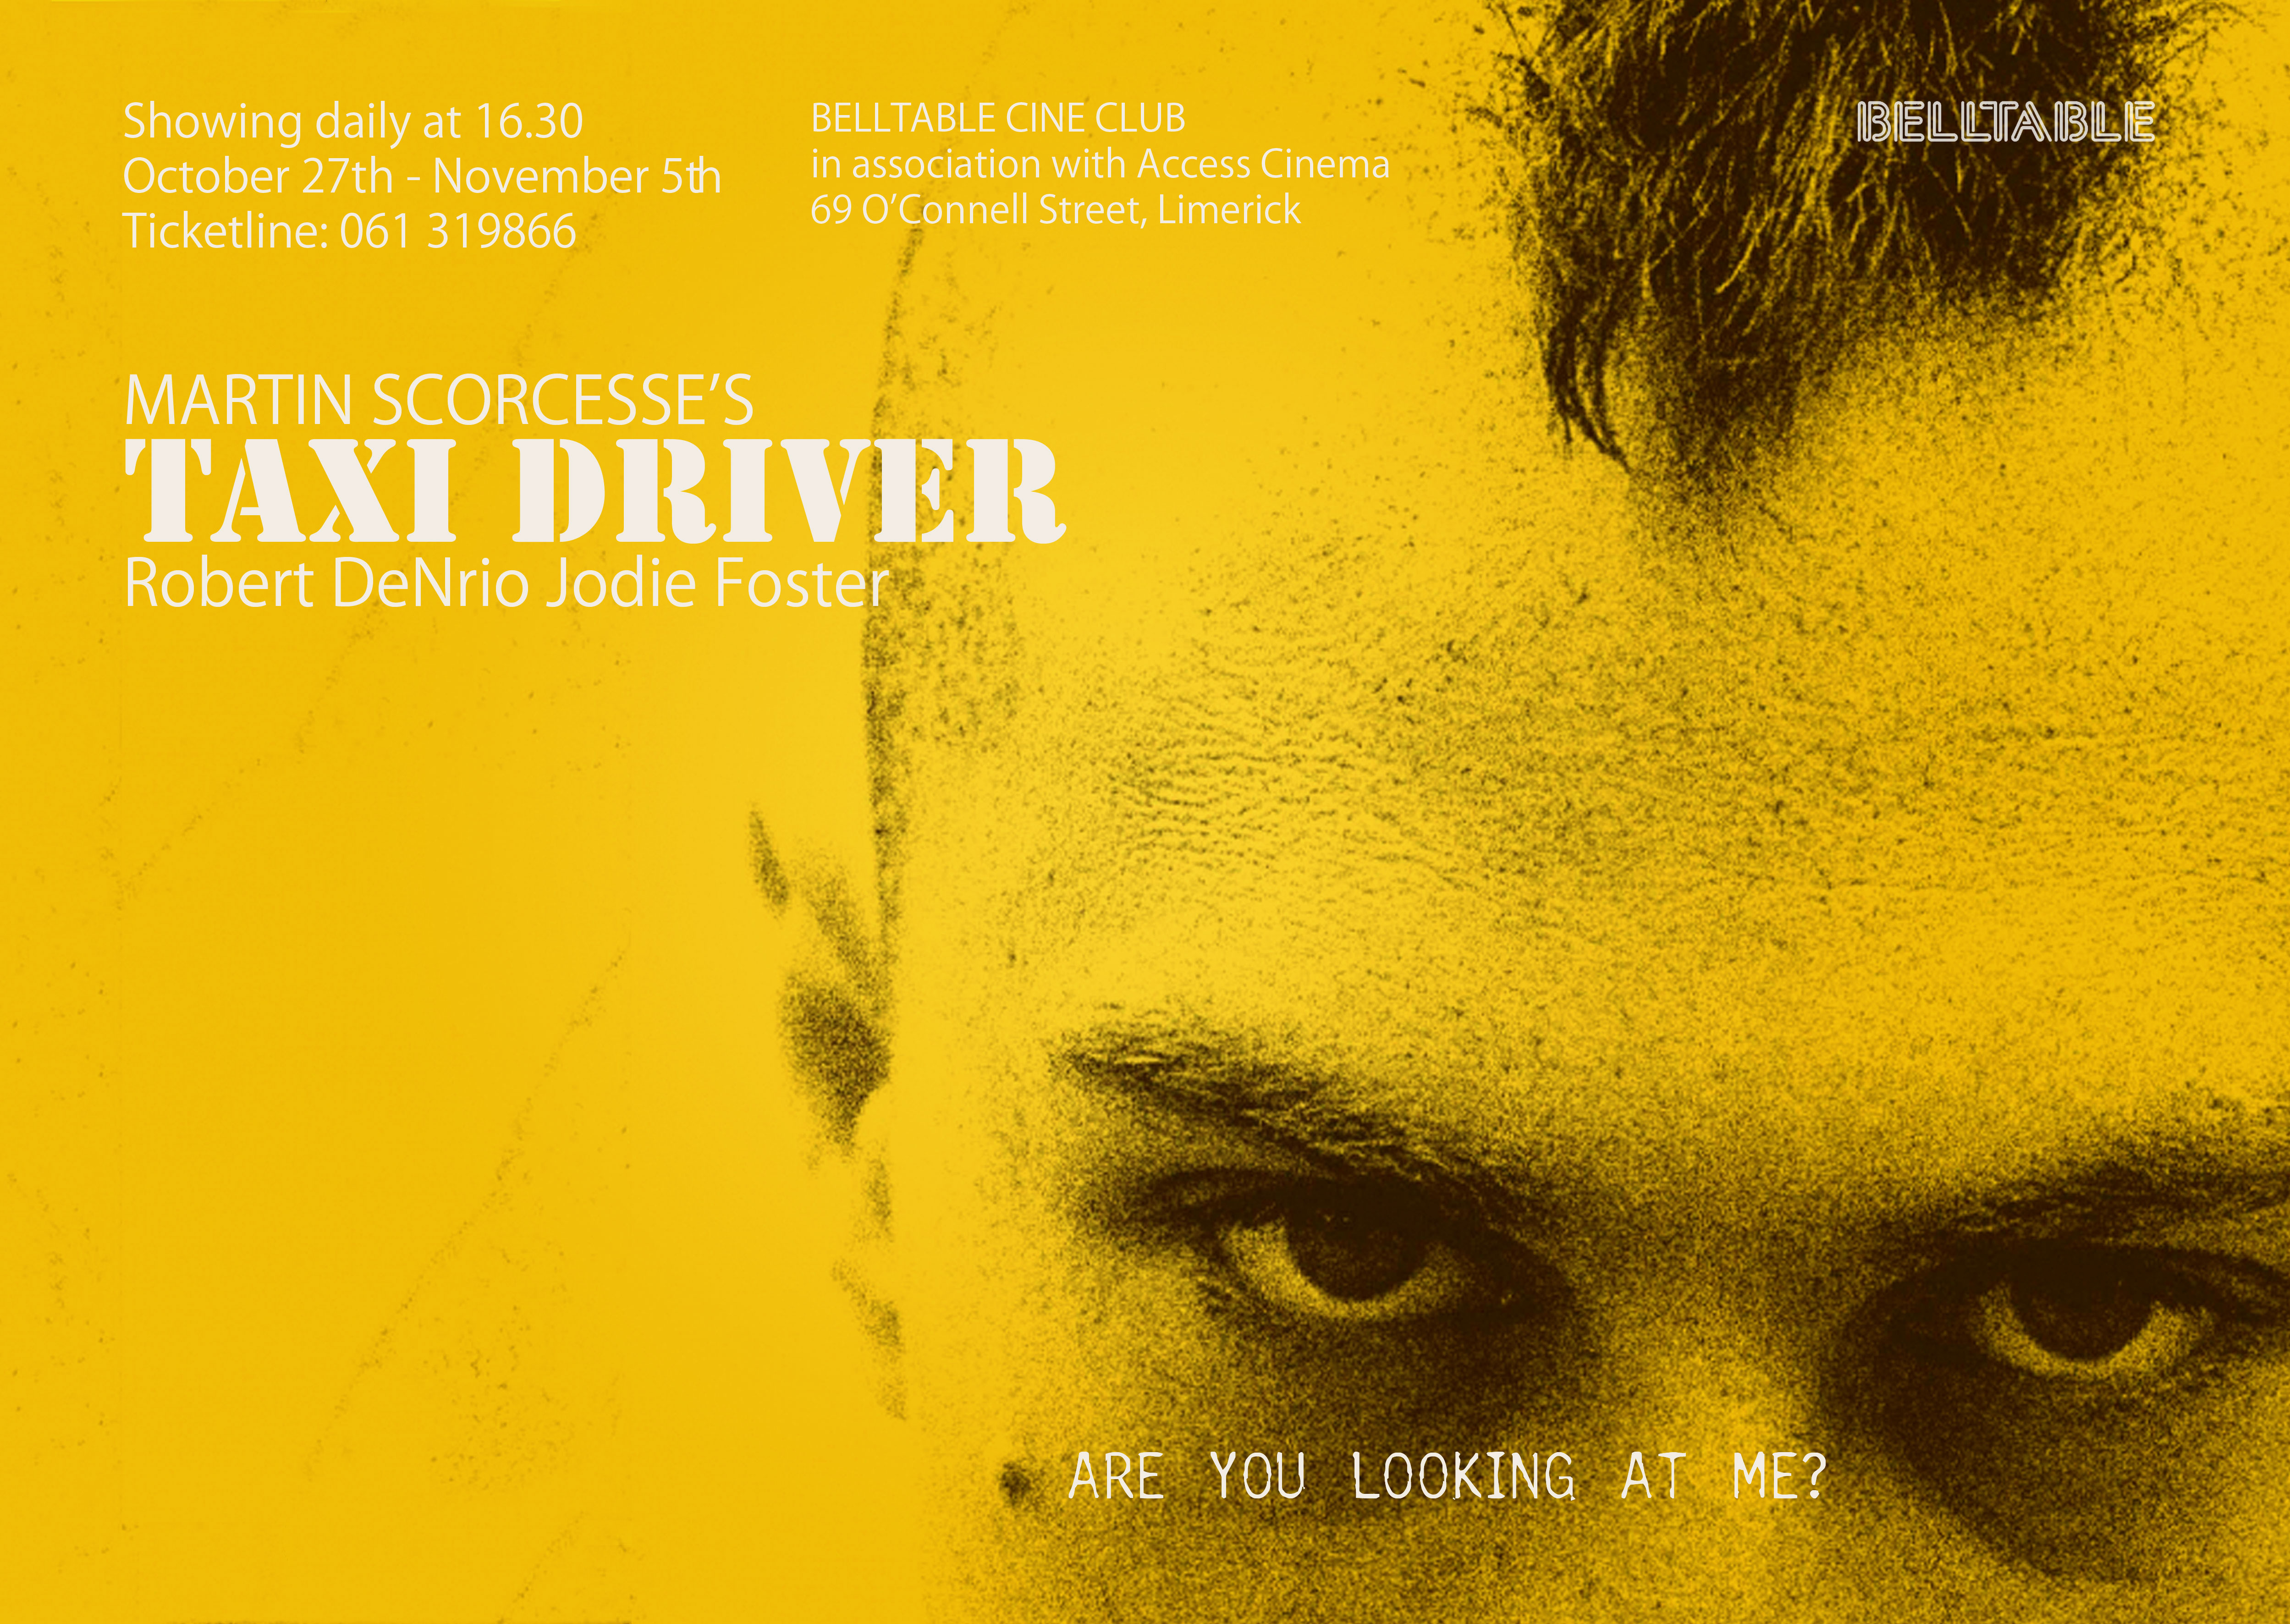 taxi driver analysis The taxi poem by: amy lowell prezi by: chloe, tegan, & dylan author background amy lowell was born on february 9th, 1874 in massachusetts and was the youngest of five children her first piece of writing was written with her mother and sister when she was only 13 years old by 1910 she was writing.